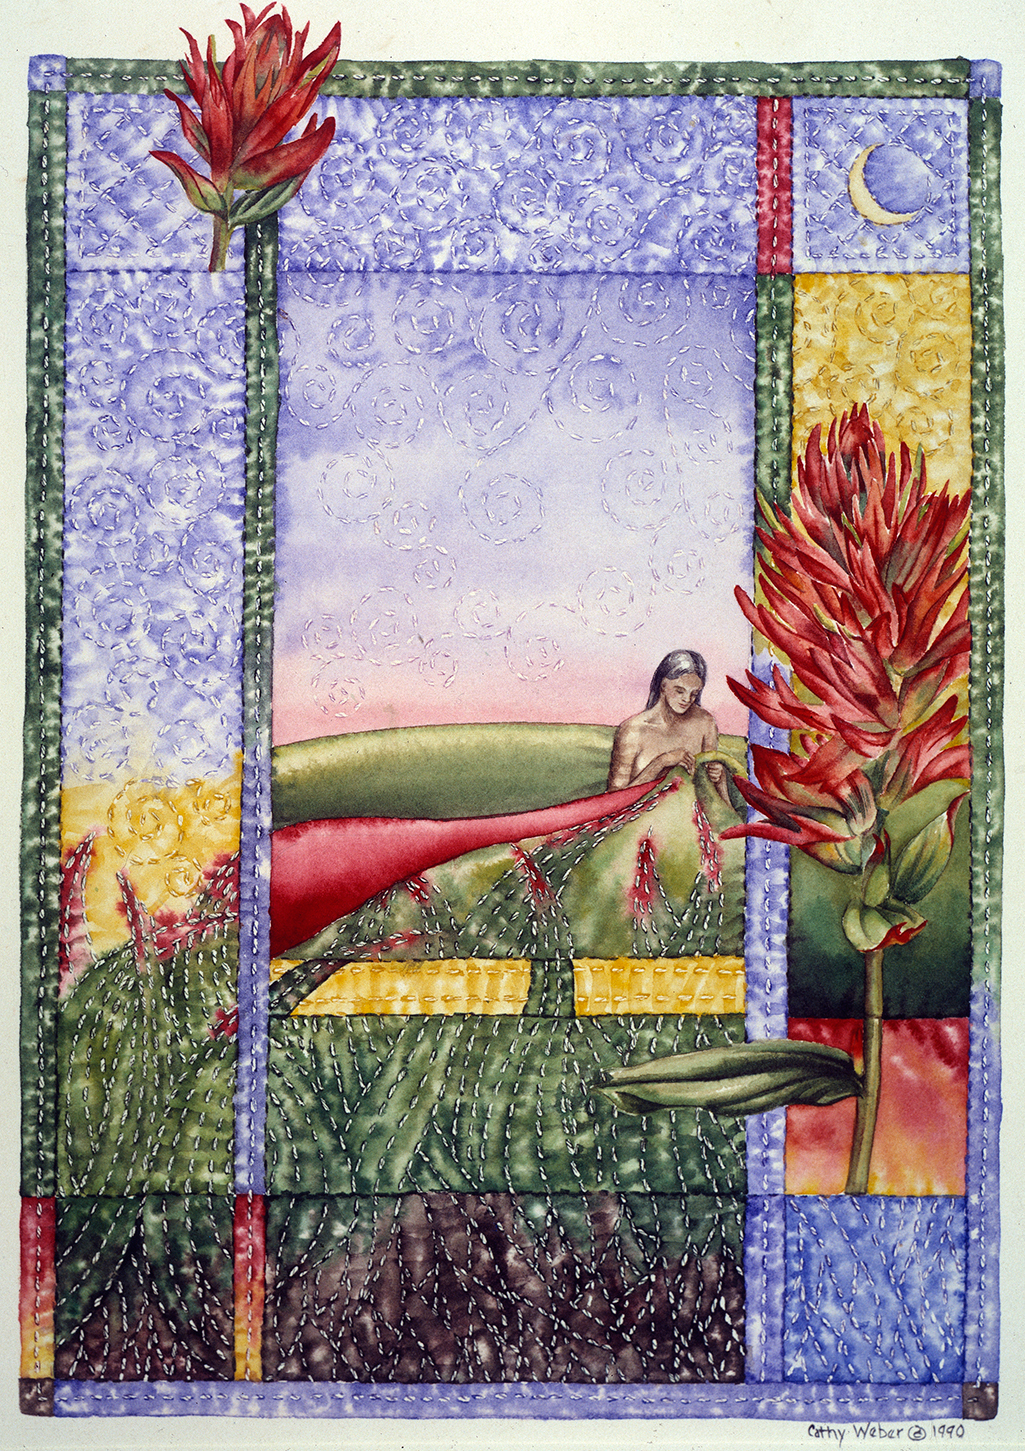 cathy weber - art - holy card - holycard - quilt - watercolor - creation - indian paintbrush - stitcher - stitch - montana